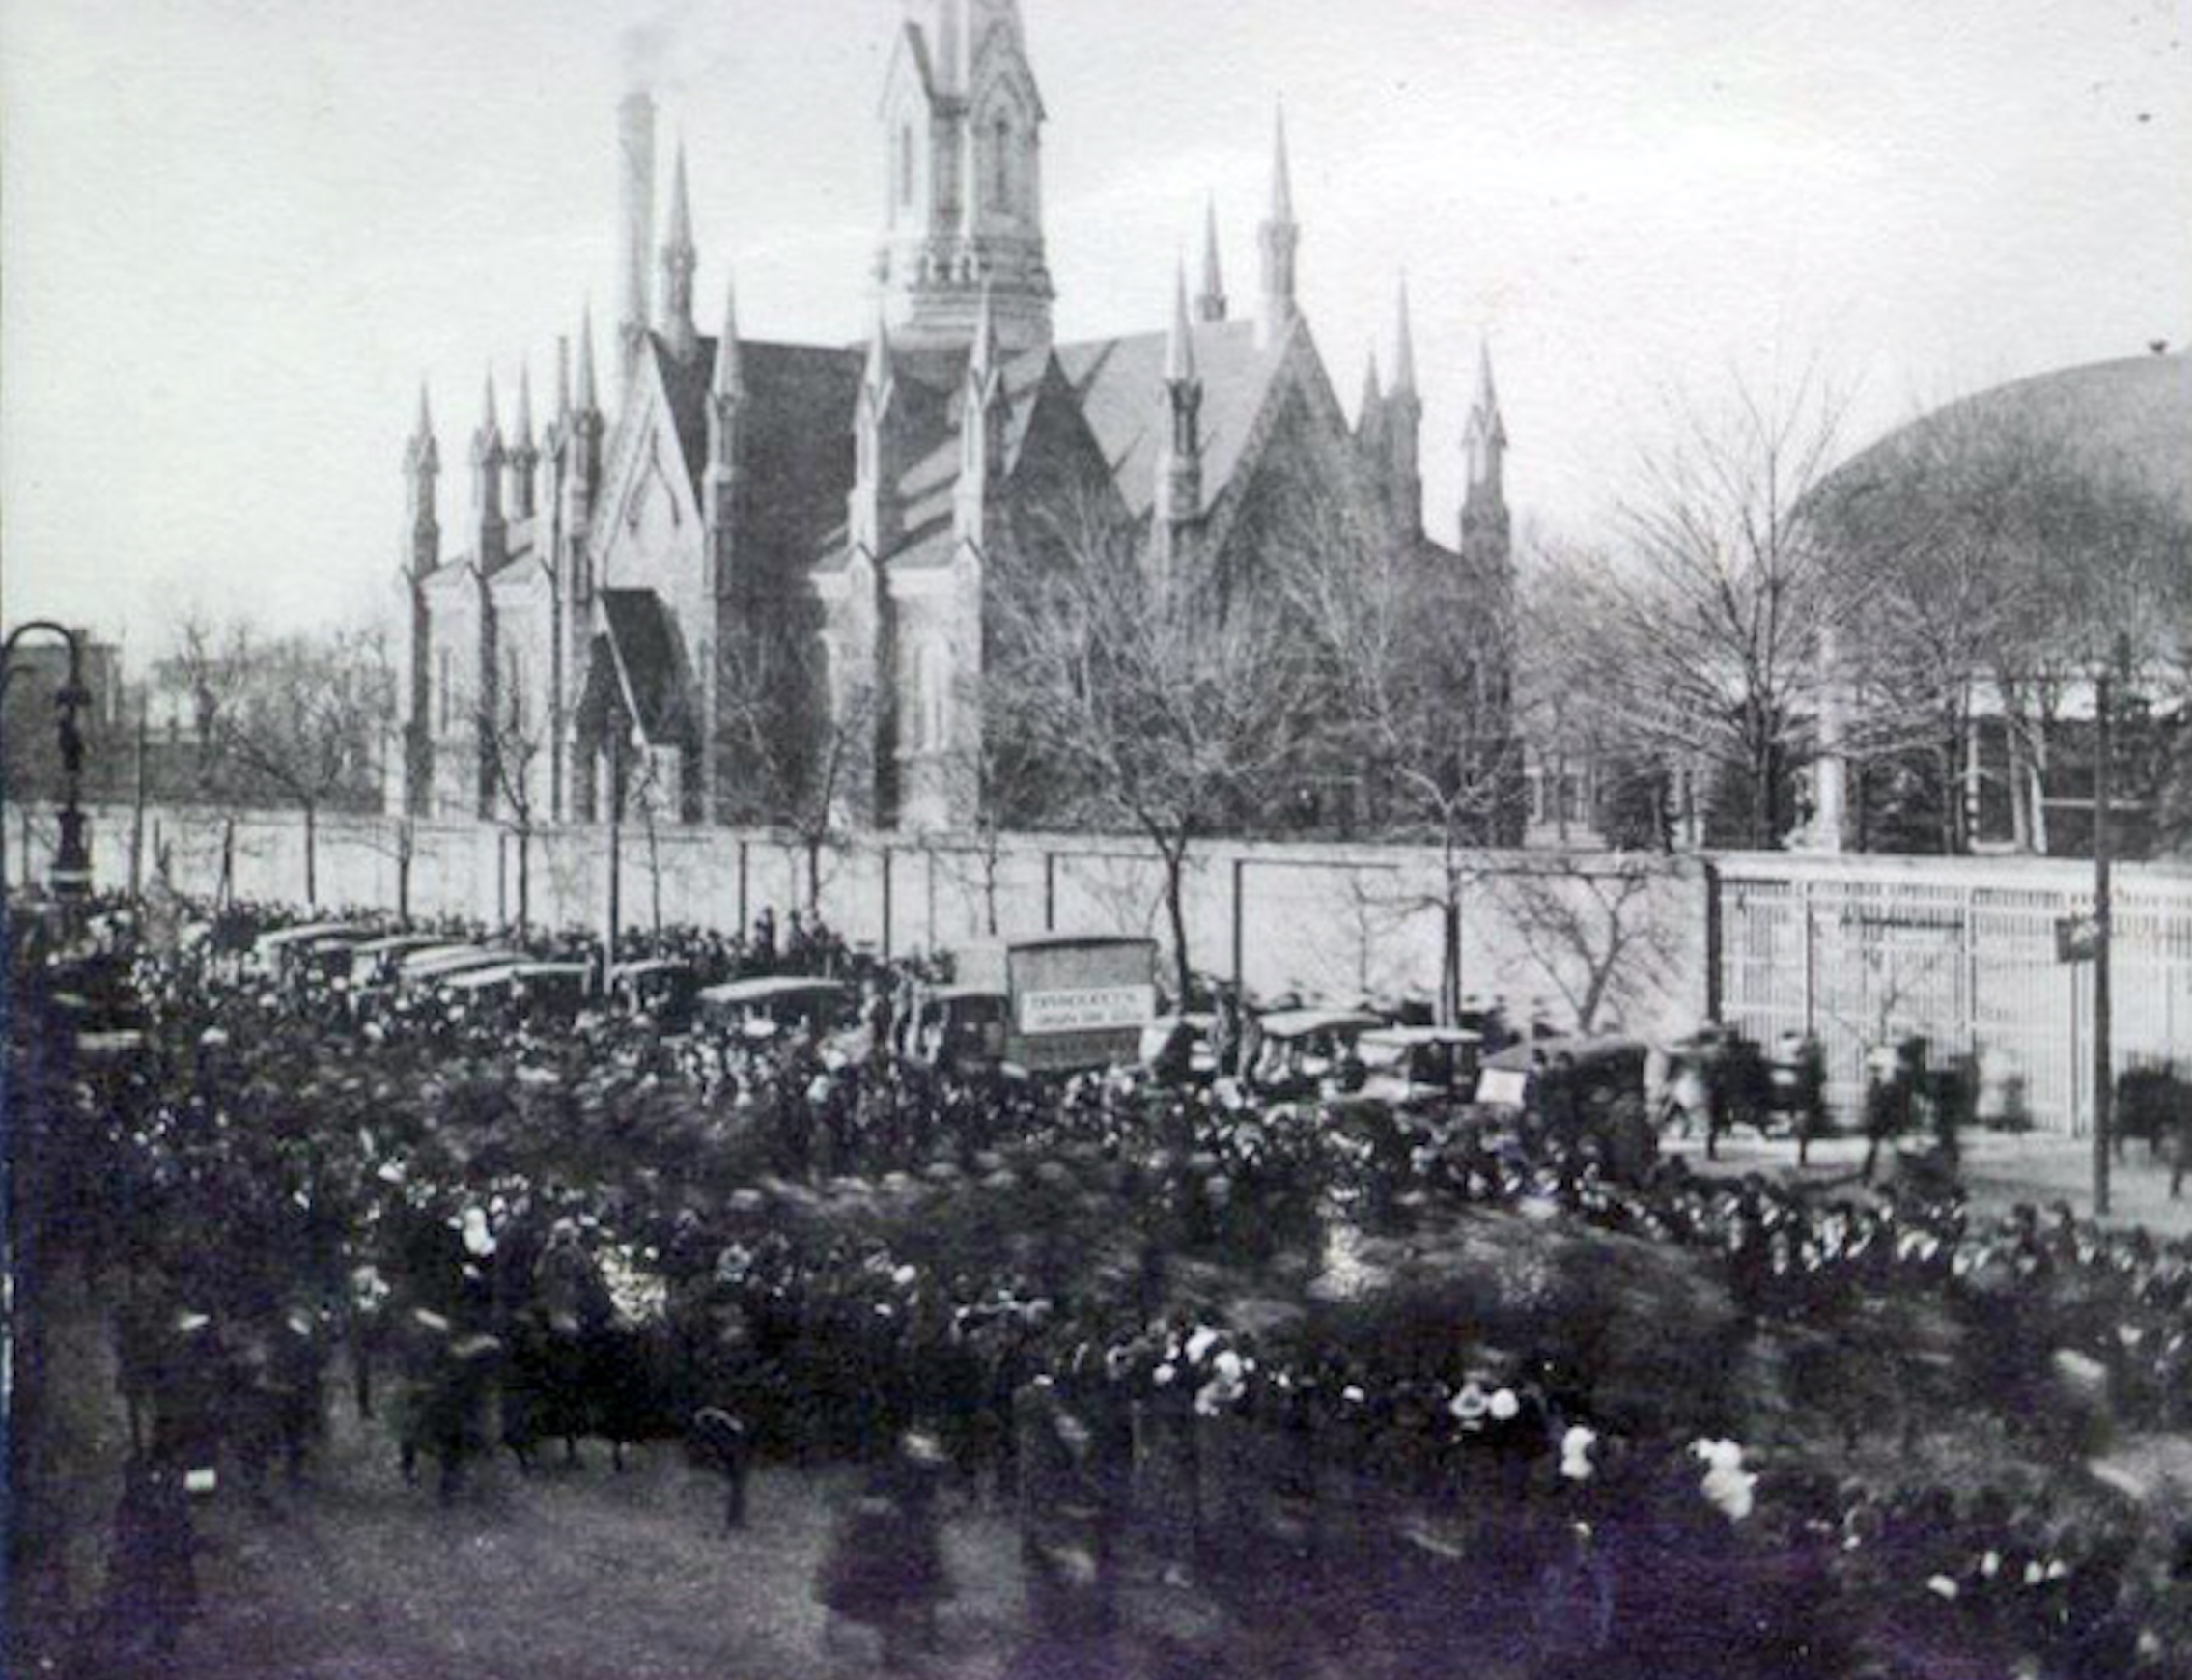 Crowds gather outside the Temple walls in Salt Lake in 1919. This gathering was to honor the troops who came home from World War I.